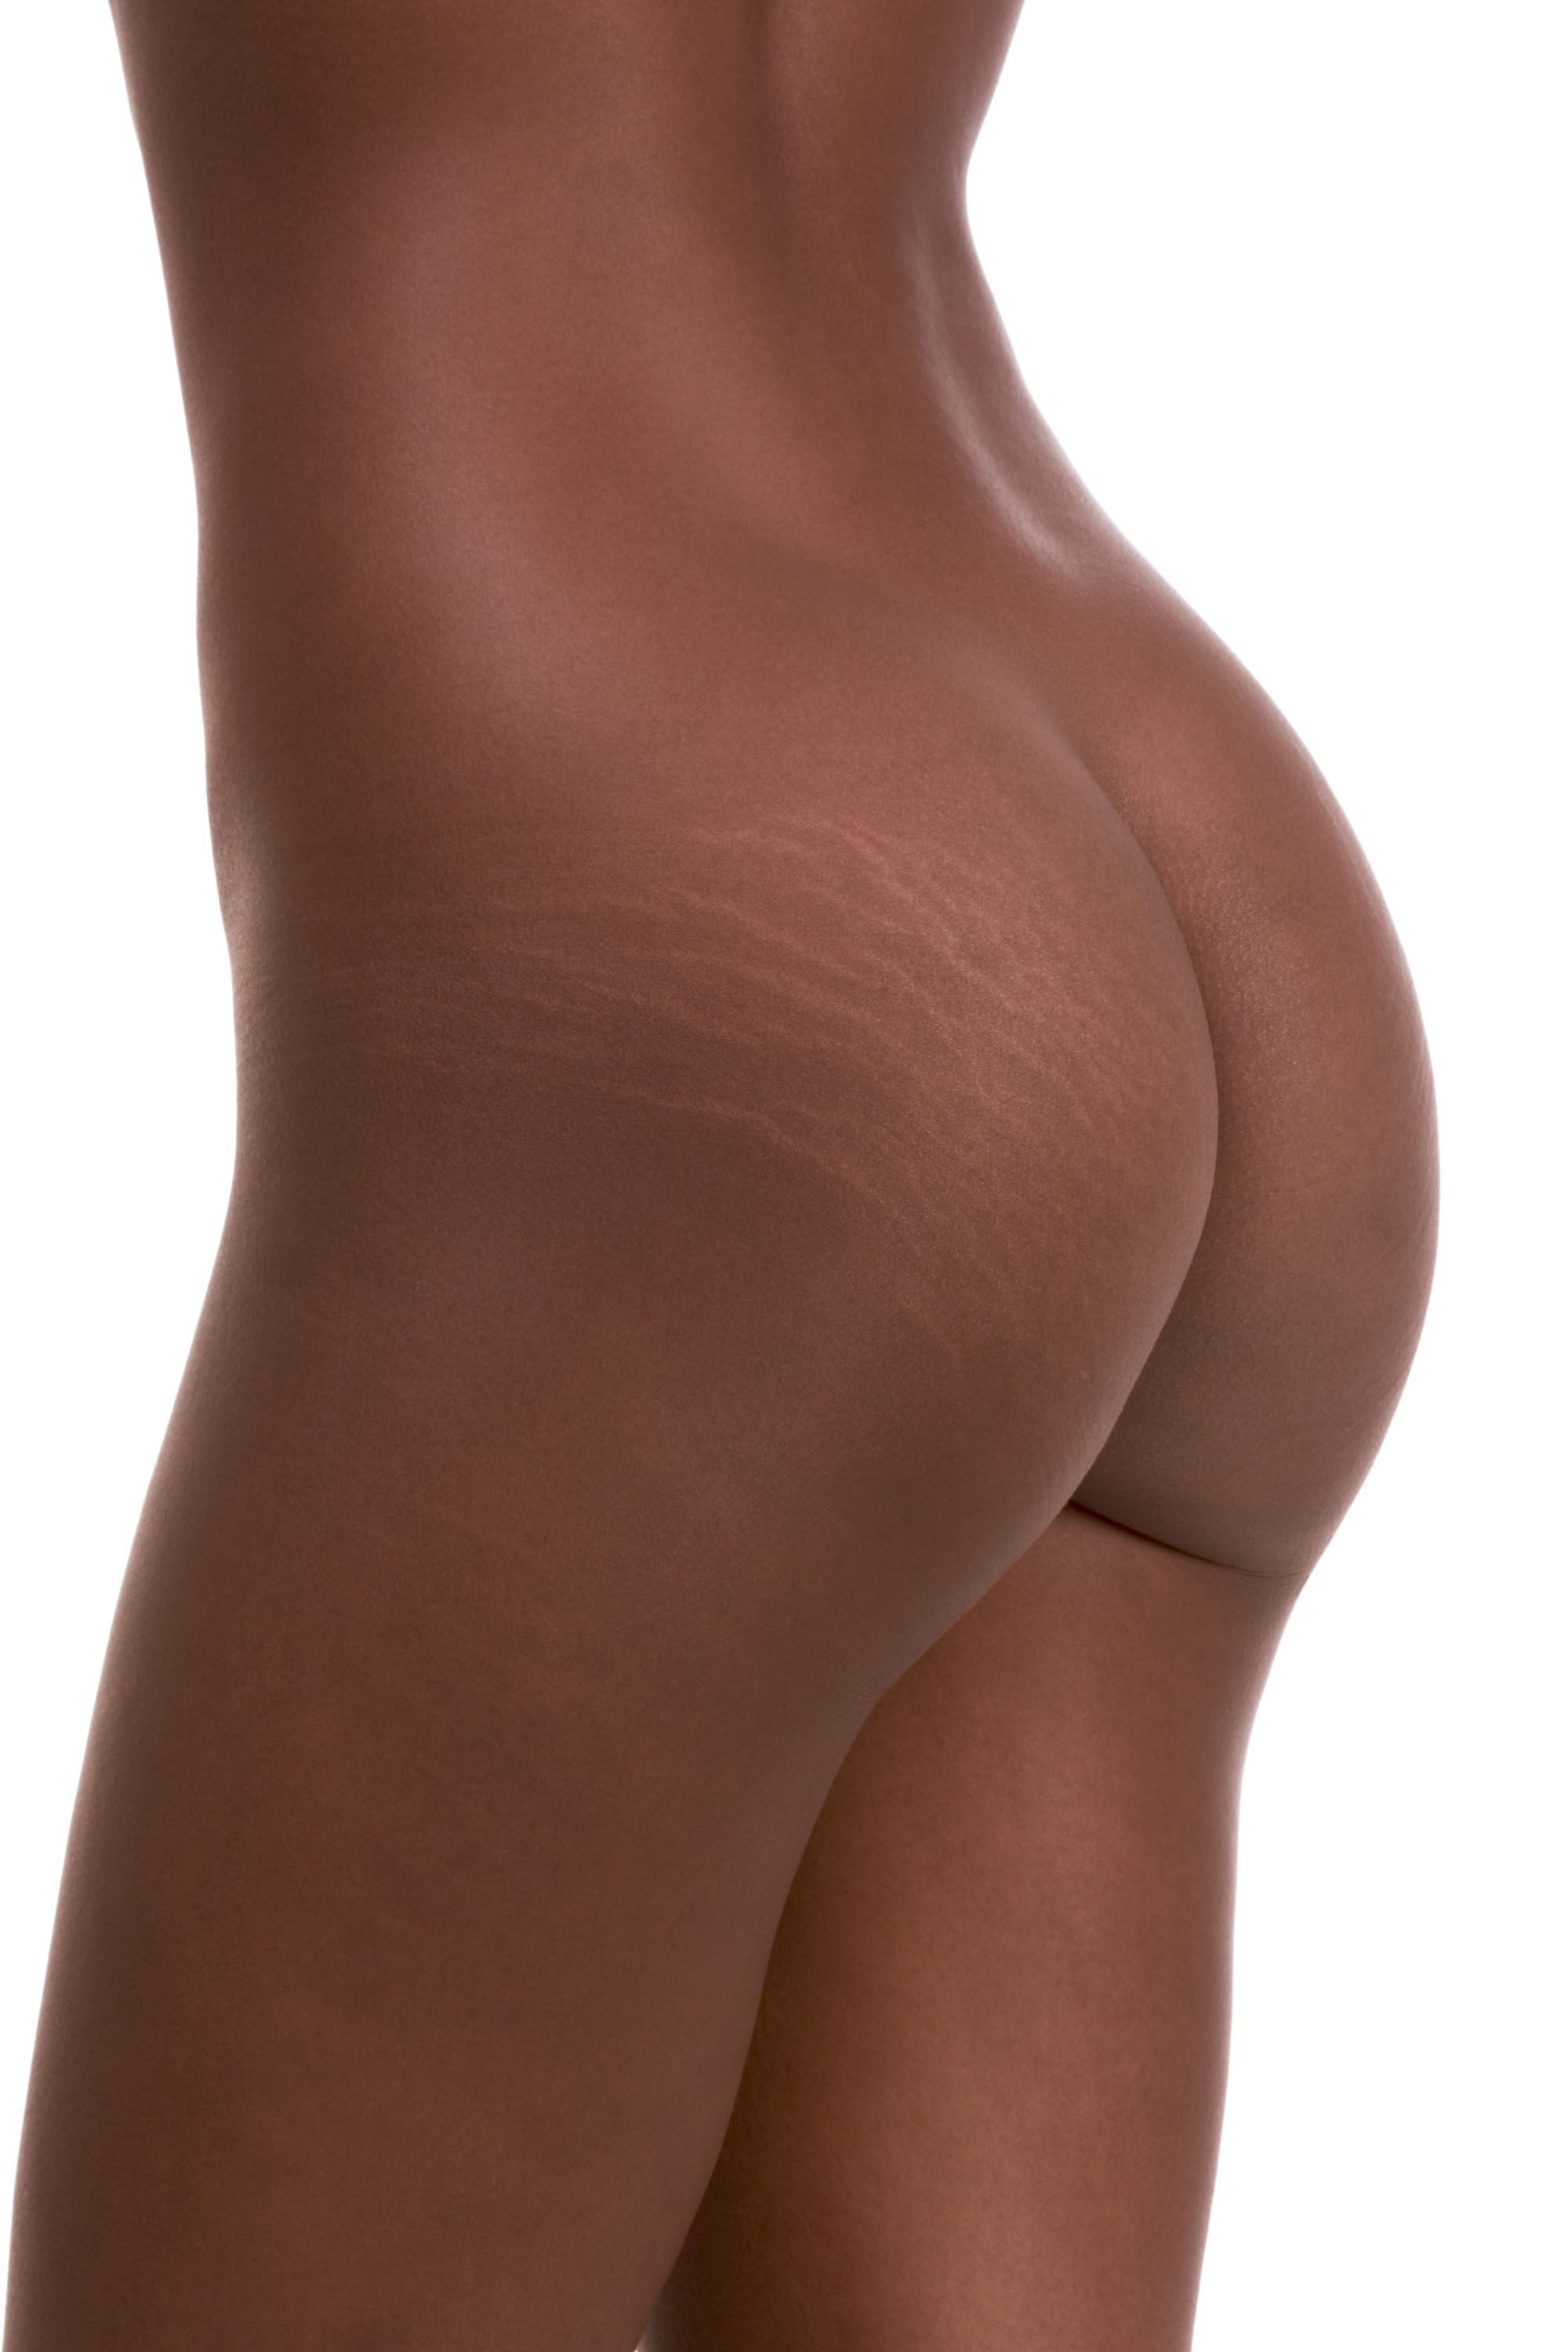 How To Get Rid Of Stretch Marks Stretch Mark Removal Treatments